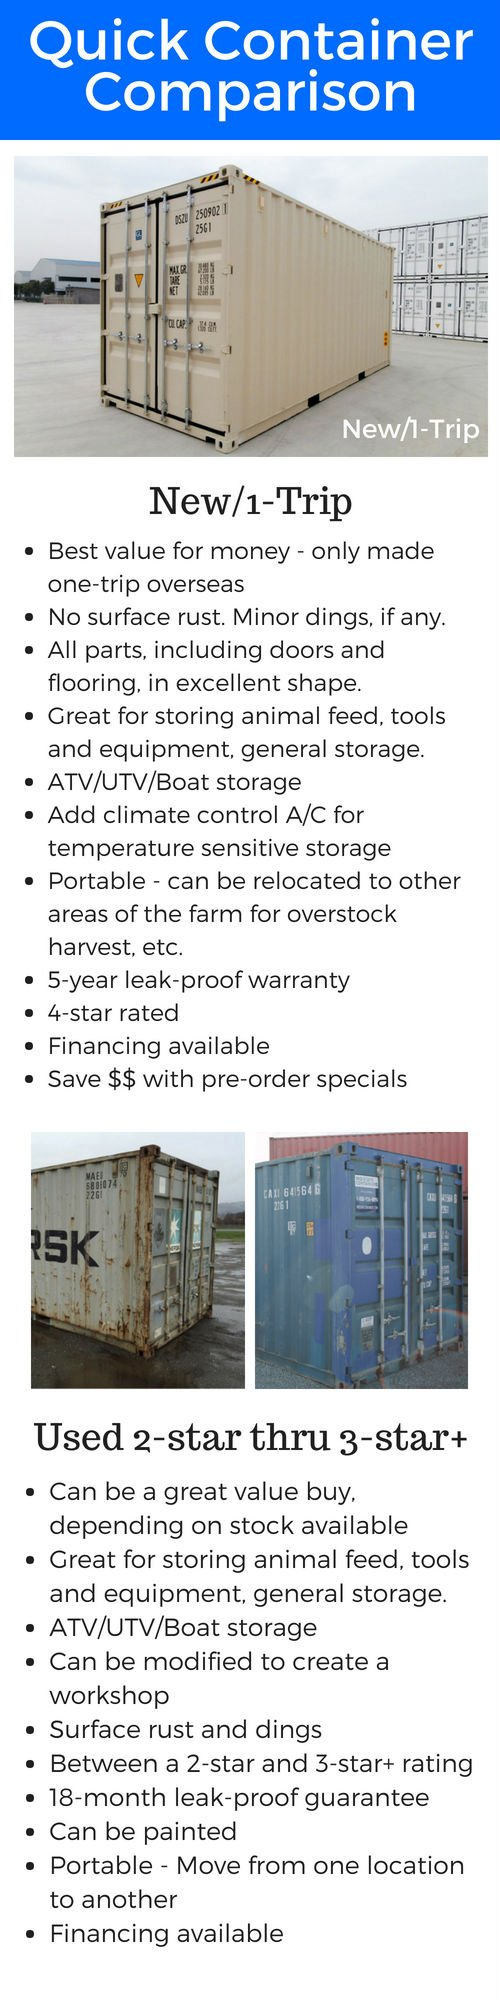 shipping container uses. shipping container farm, shipping container farm storage, cheap container farm storage, cheap storage sea can, cheap animal feed storage, harvest overflow storage, farm harvest overflow, atv garage, utv garage, atv storage, utv storage, farm additional storage, farm equipment storage, farm tool storage, vineyard storage, portable farm storage, portable storage for farms, boat storage, jetski storage, farm equipment storage, vineyard storage, winery storage, hops storage, barley storage, wheat storage, beer storage, wine cellar, animal feed storage, horse tack room, portable tack room, shipping container tack room, shipping container barn, sea can barn, conex box barn, conex box farm storage, sea can farm storage, farm storage